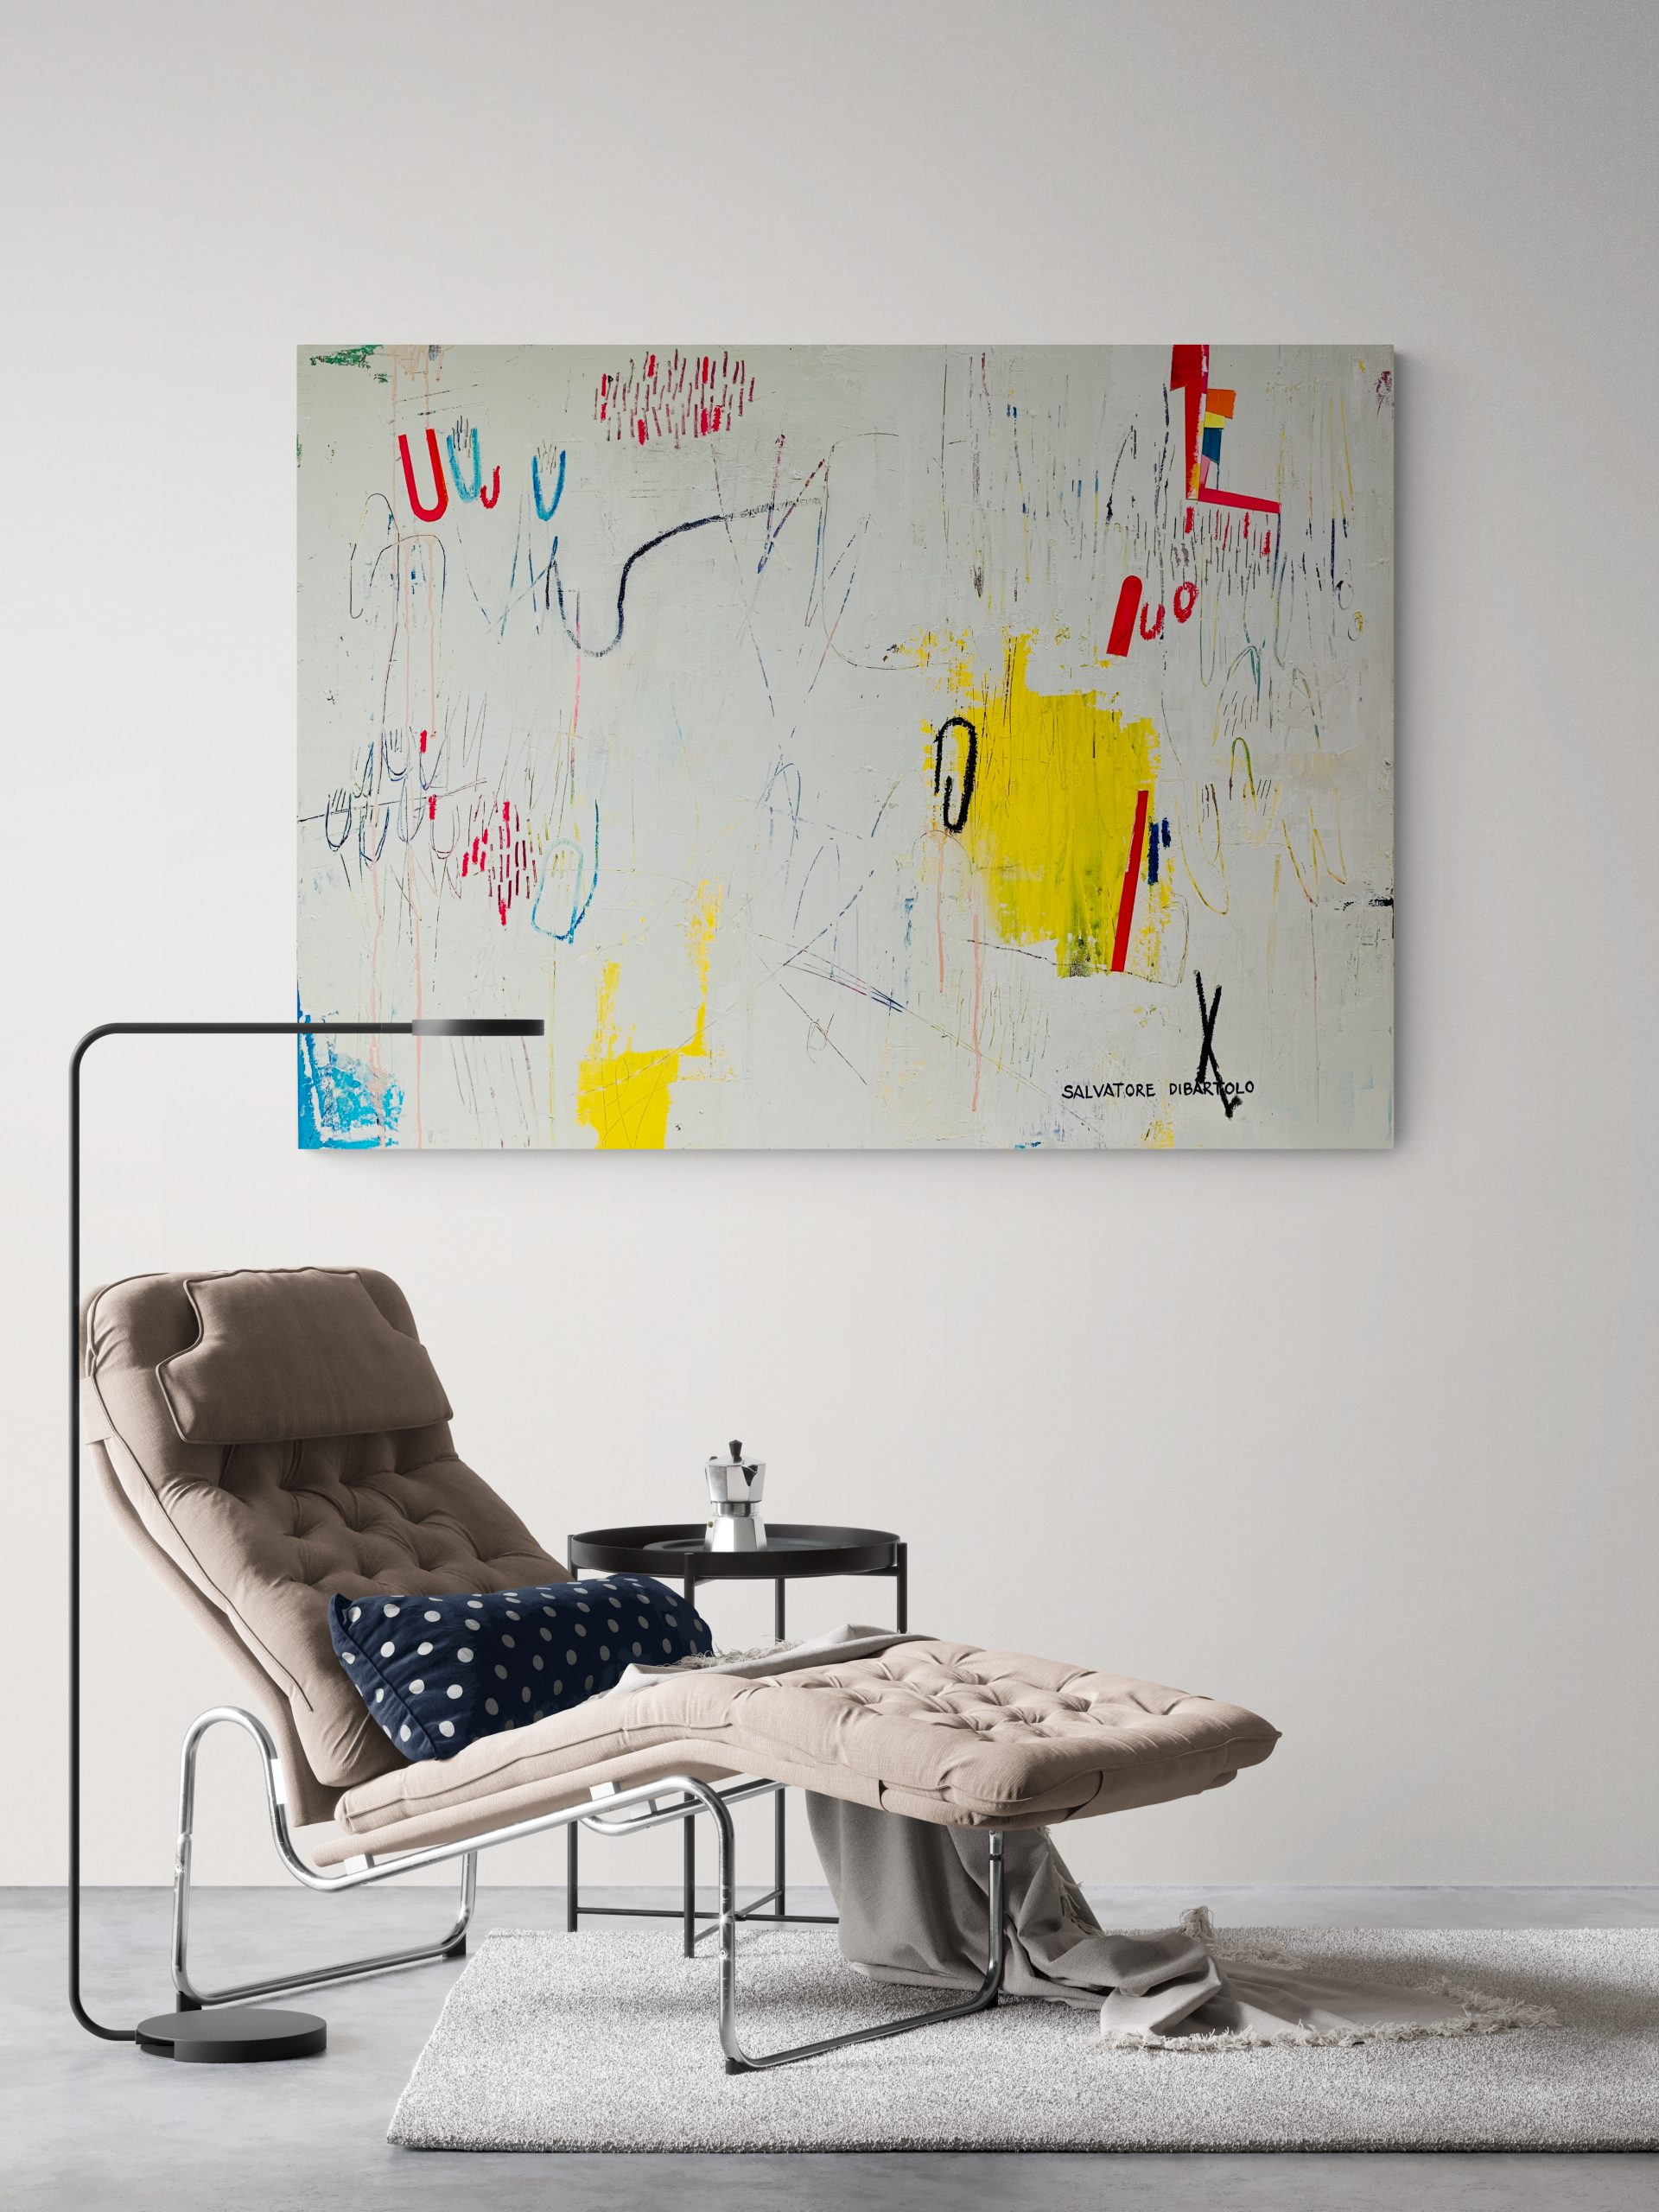 Stylish Sitting Room With Chaise Lounger And Lamp 2